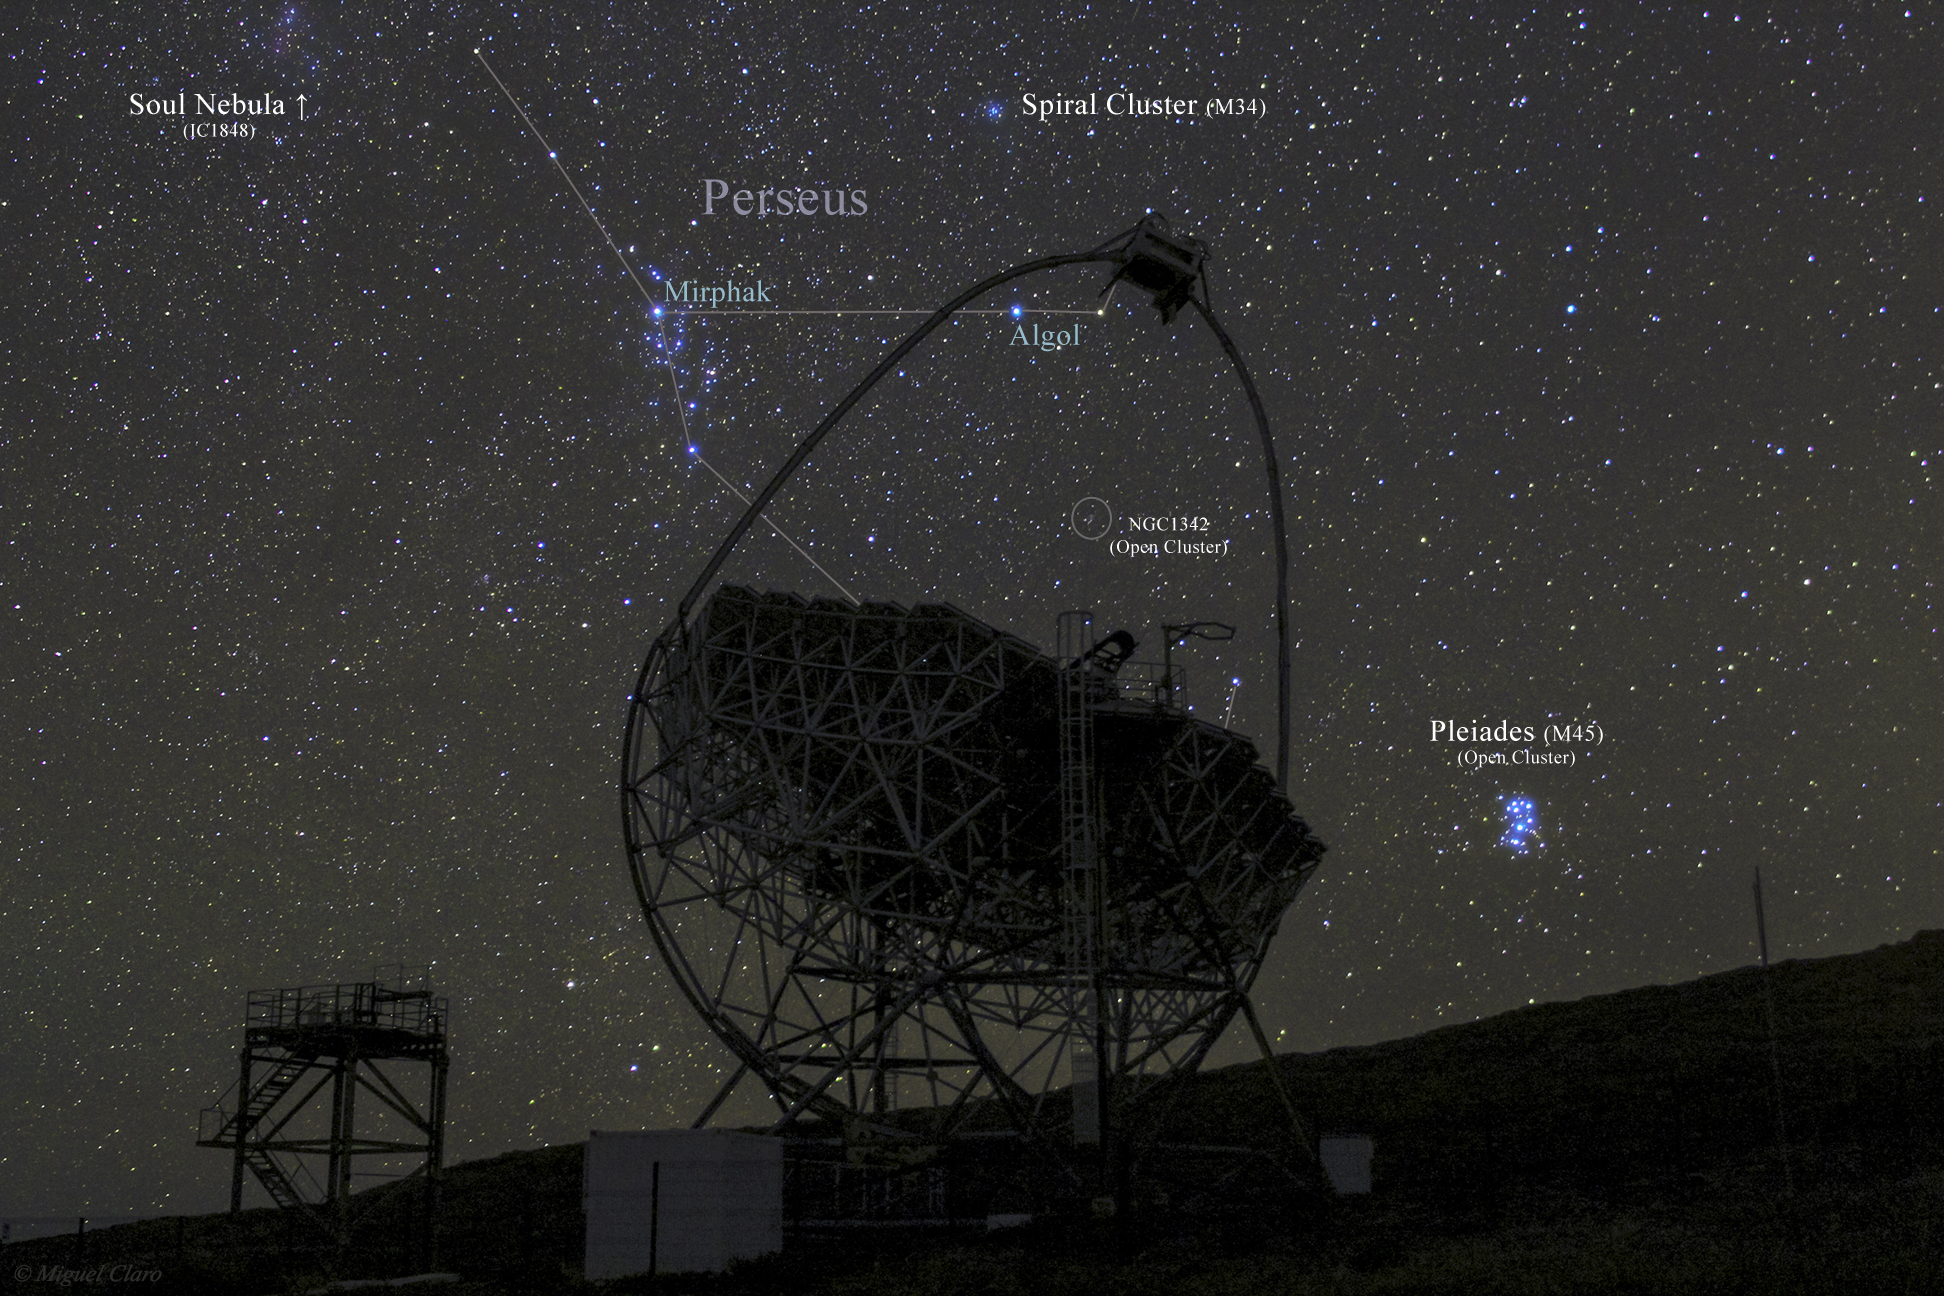 <h5>Seven MAGICal Sisters (annotated version with the identification of the main night sky objects)</h5>